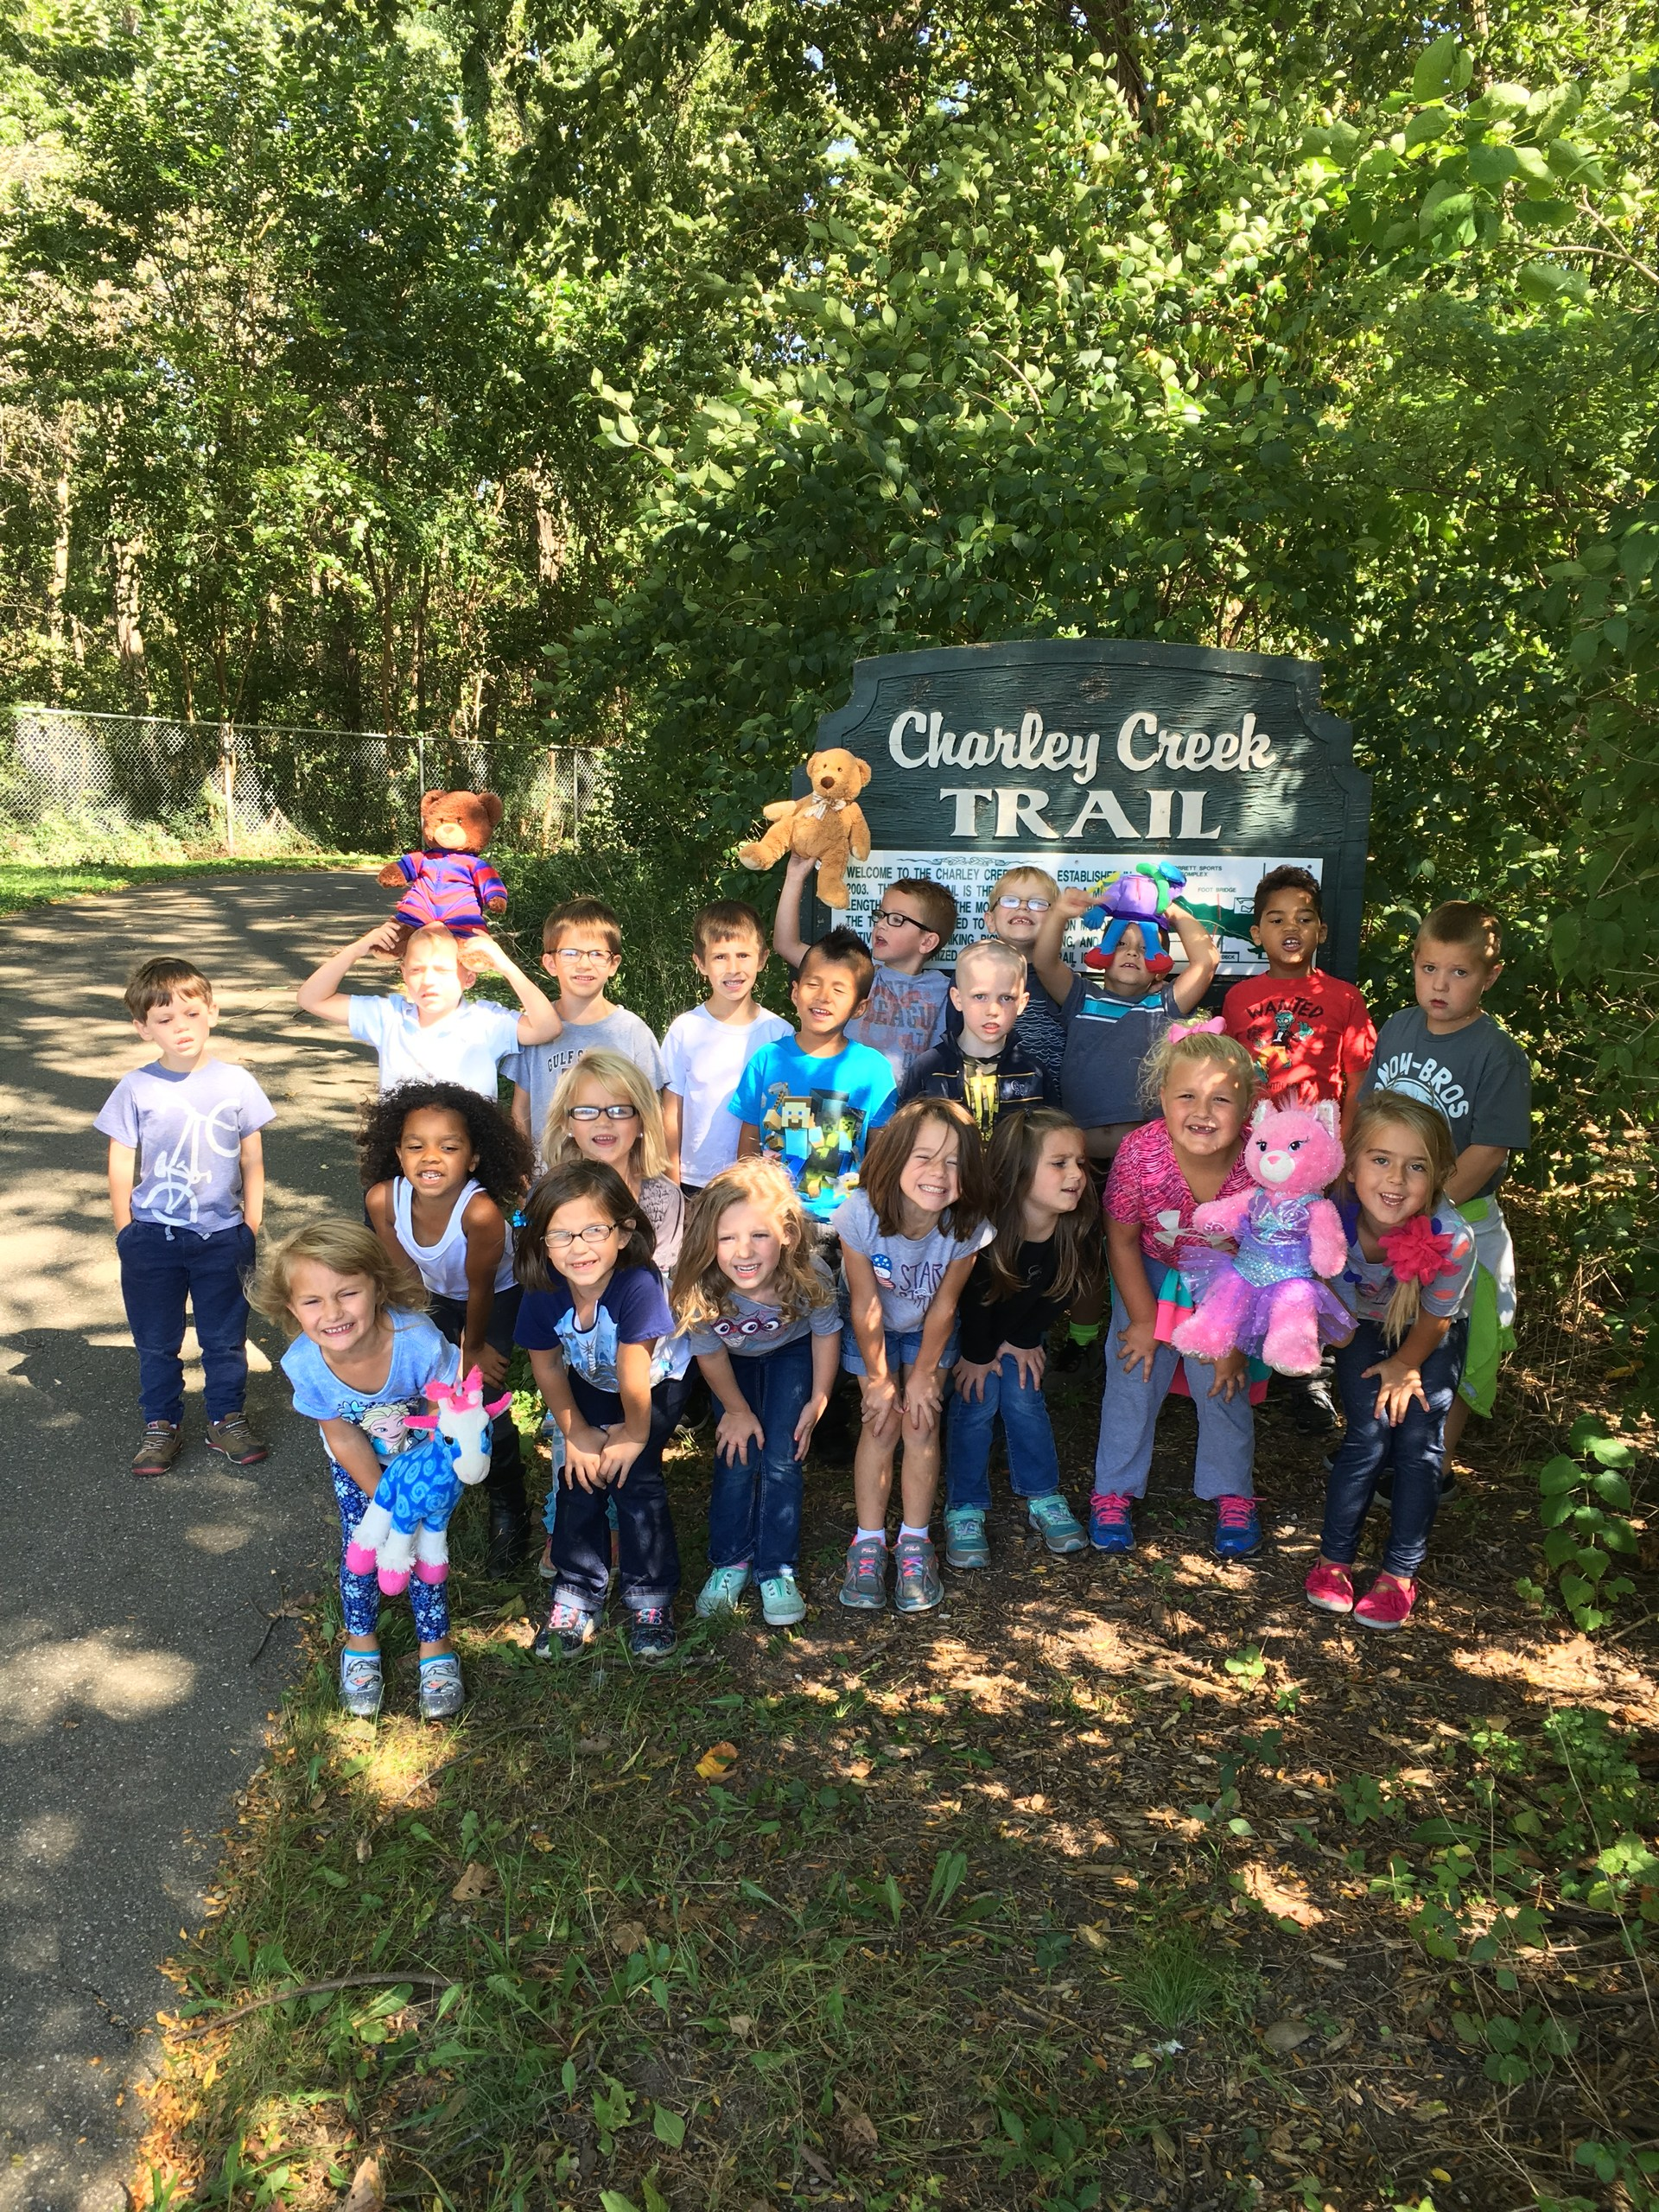 Students at Charley Creek Trail.